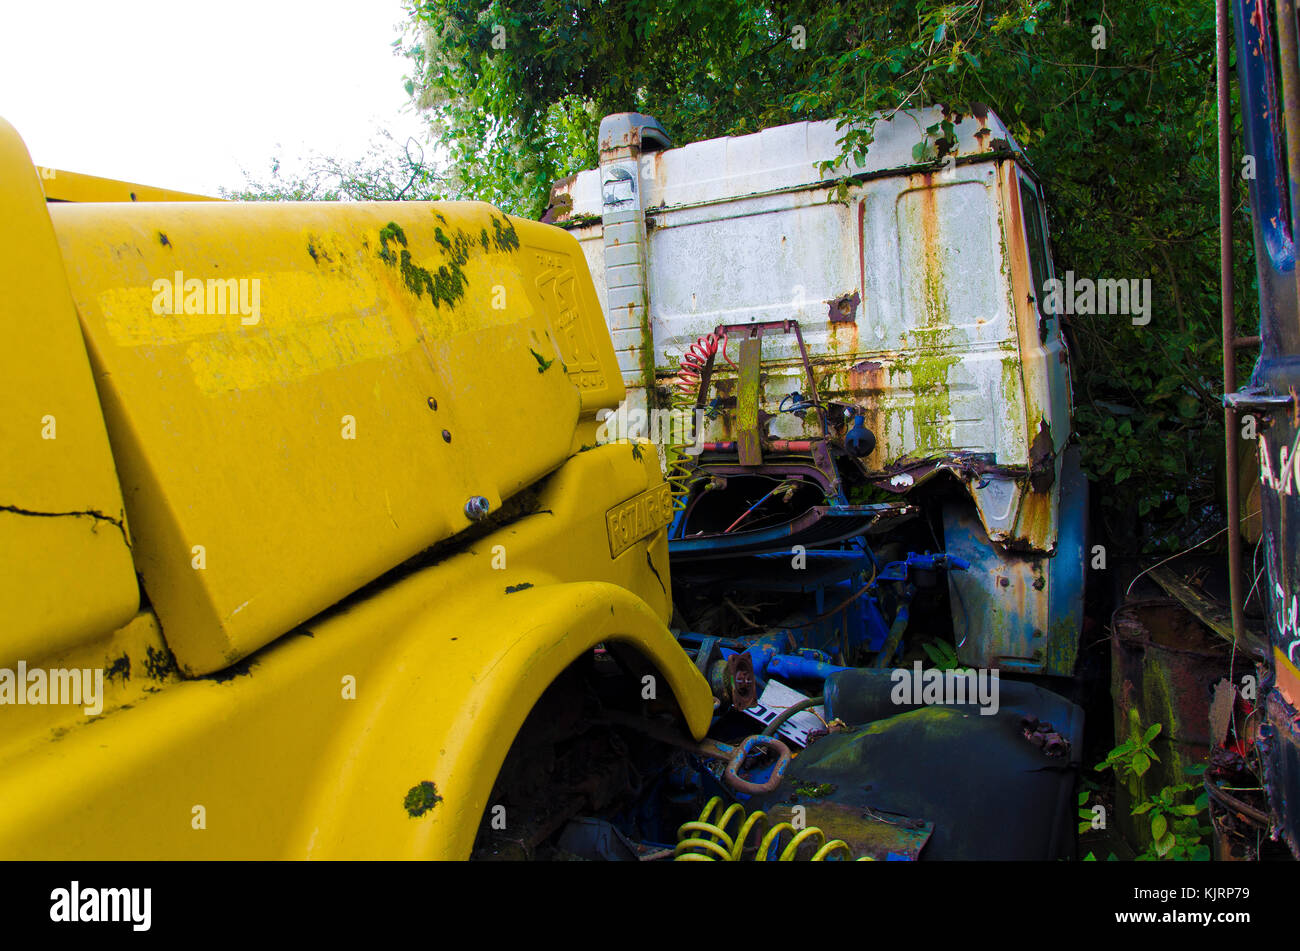 Down Vehicles Stock Photos & Down Vehicles Stock Images - Page 3 - Alamy